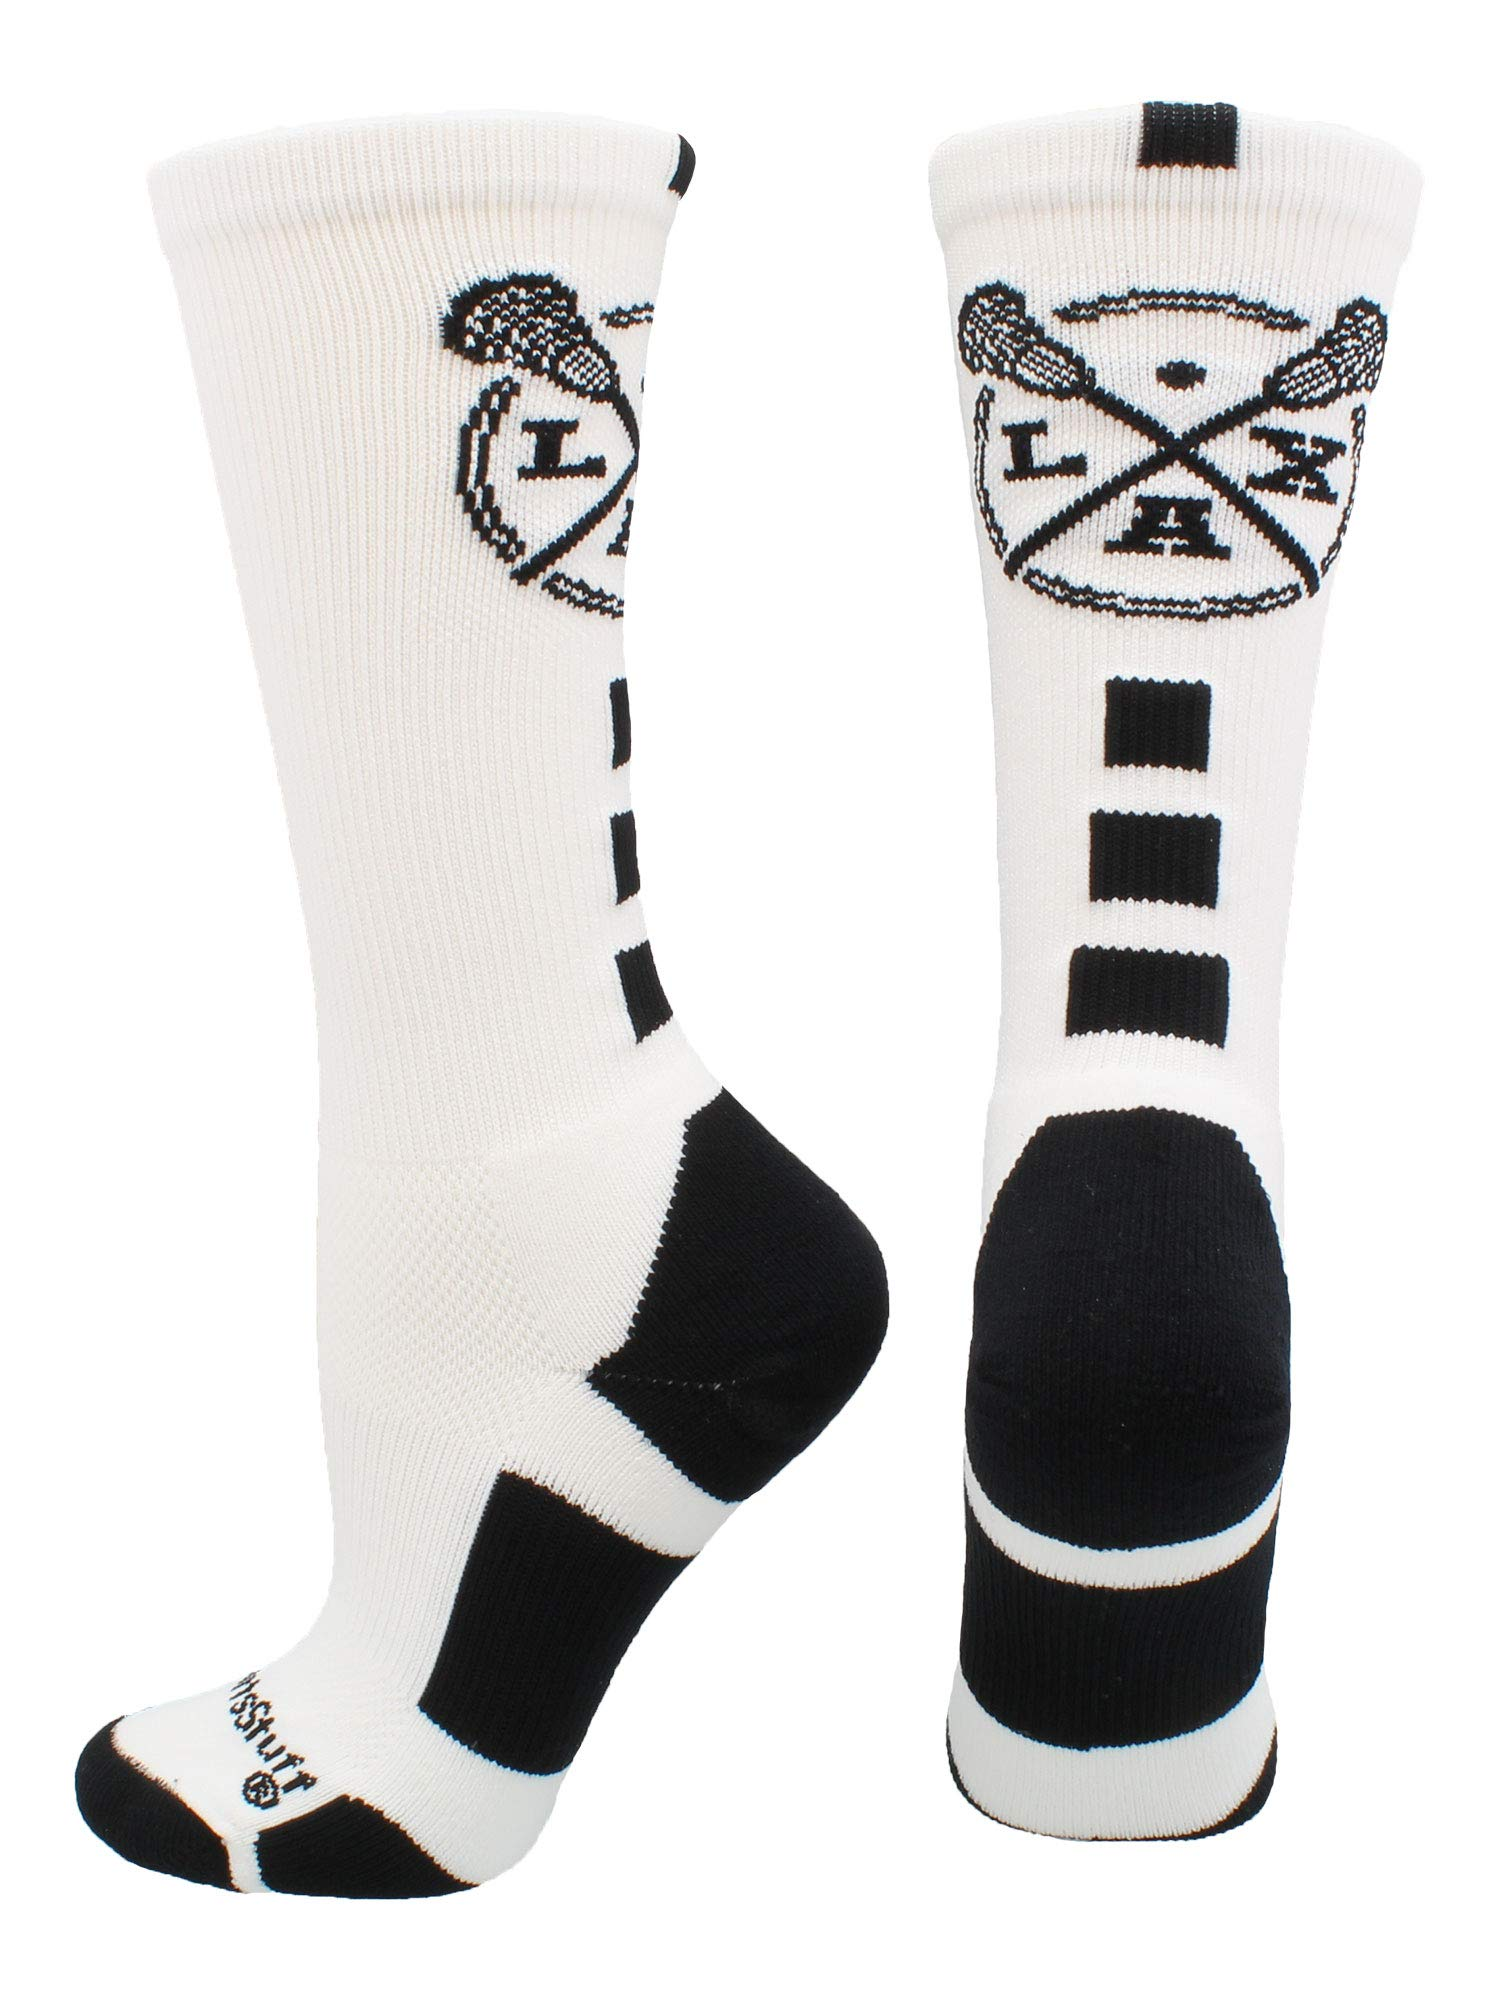 MadSportsStuff LAX Lacrosse Socks with Lacrosse Sticks Athletic Crew Socks (White/Black, Large) by MadSportsStuff